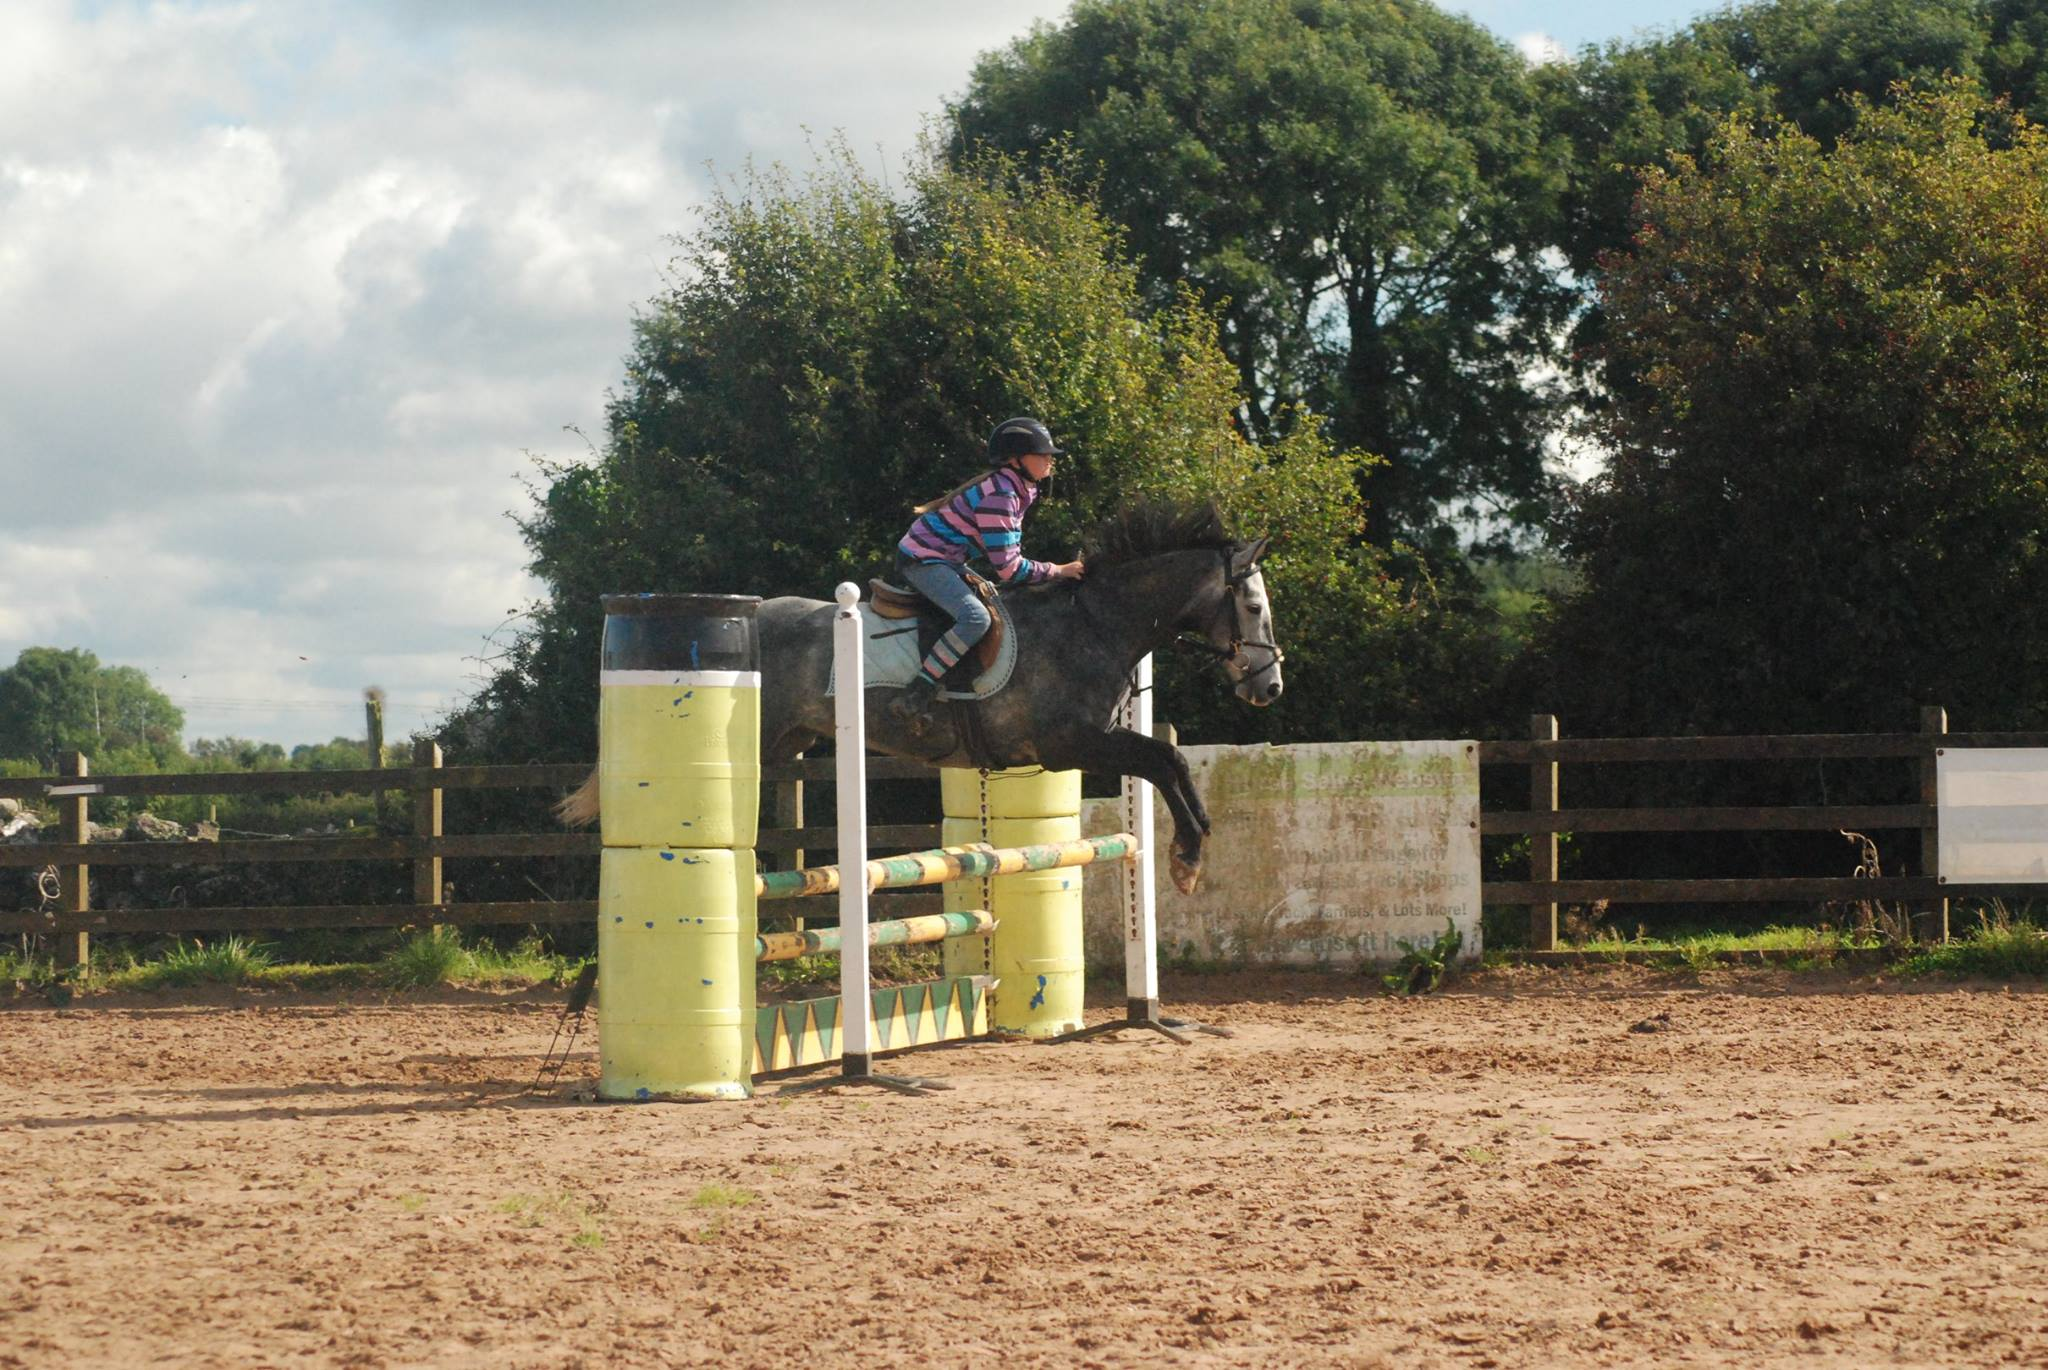 Creagh Equestrian Centre in Galway - Visit Galway